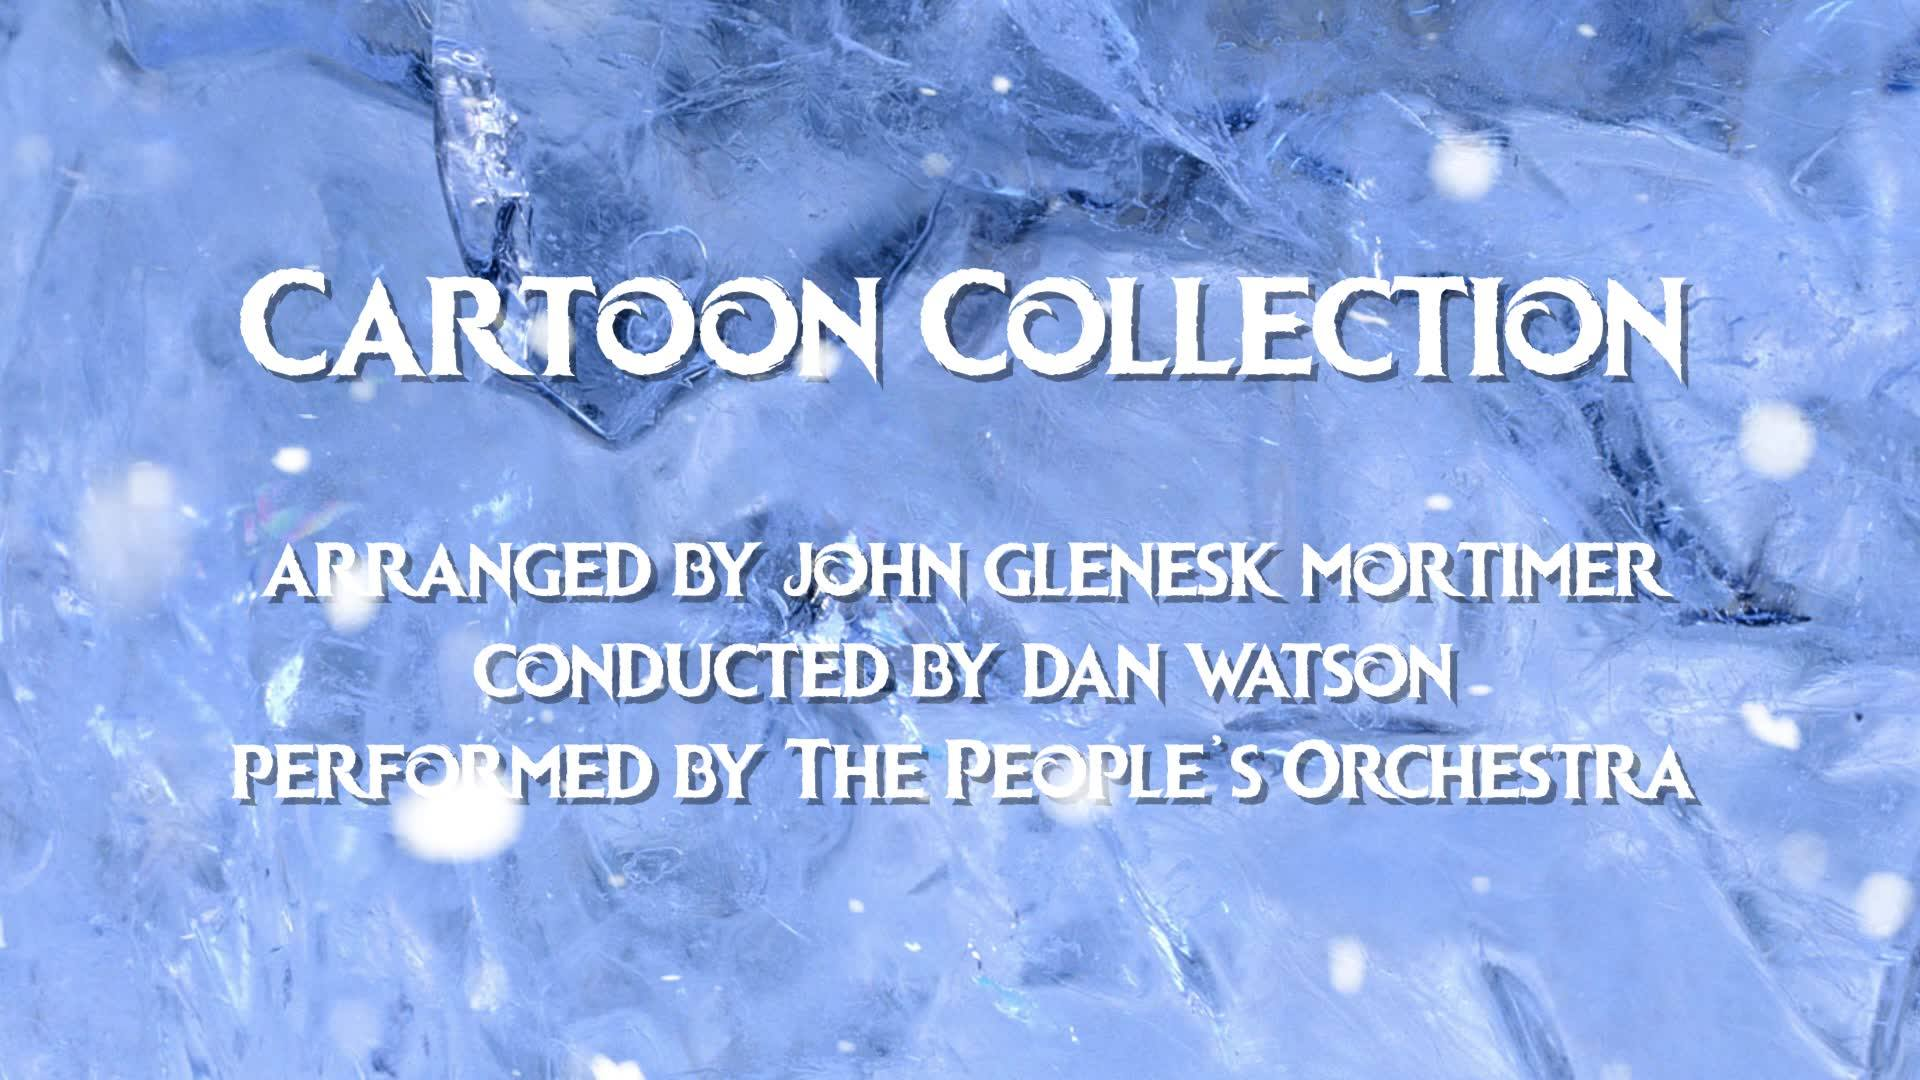 Cartoon Collection - The People's Orchestra